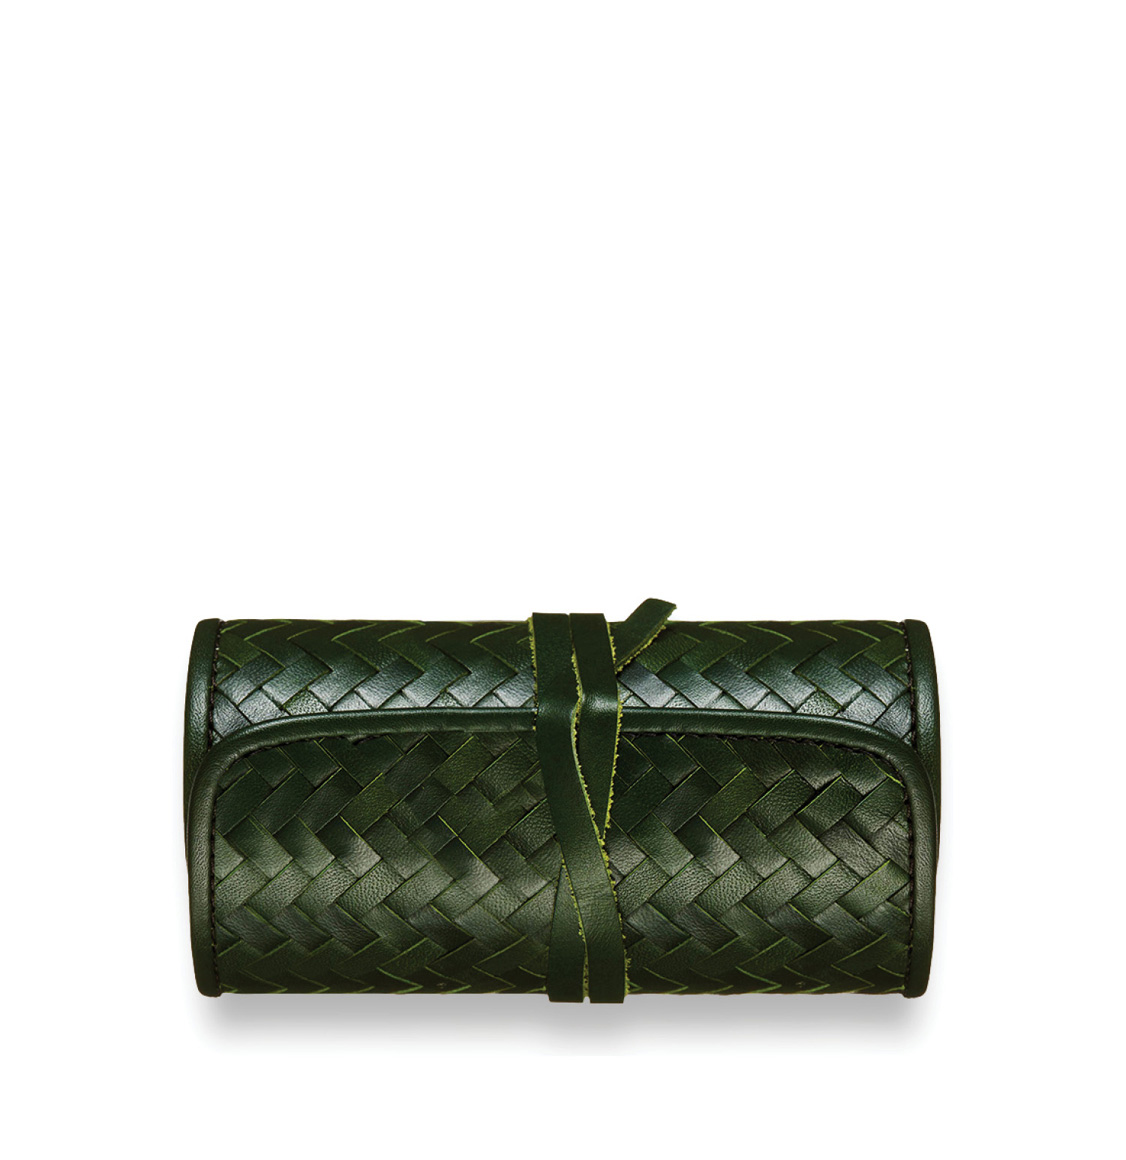 The Mantidy Herringbone Cheese and Wine Roll Green Leather